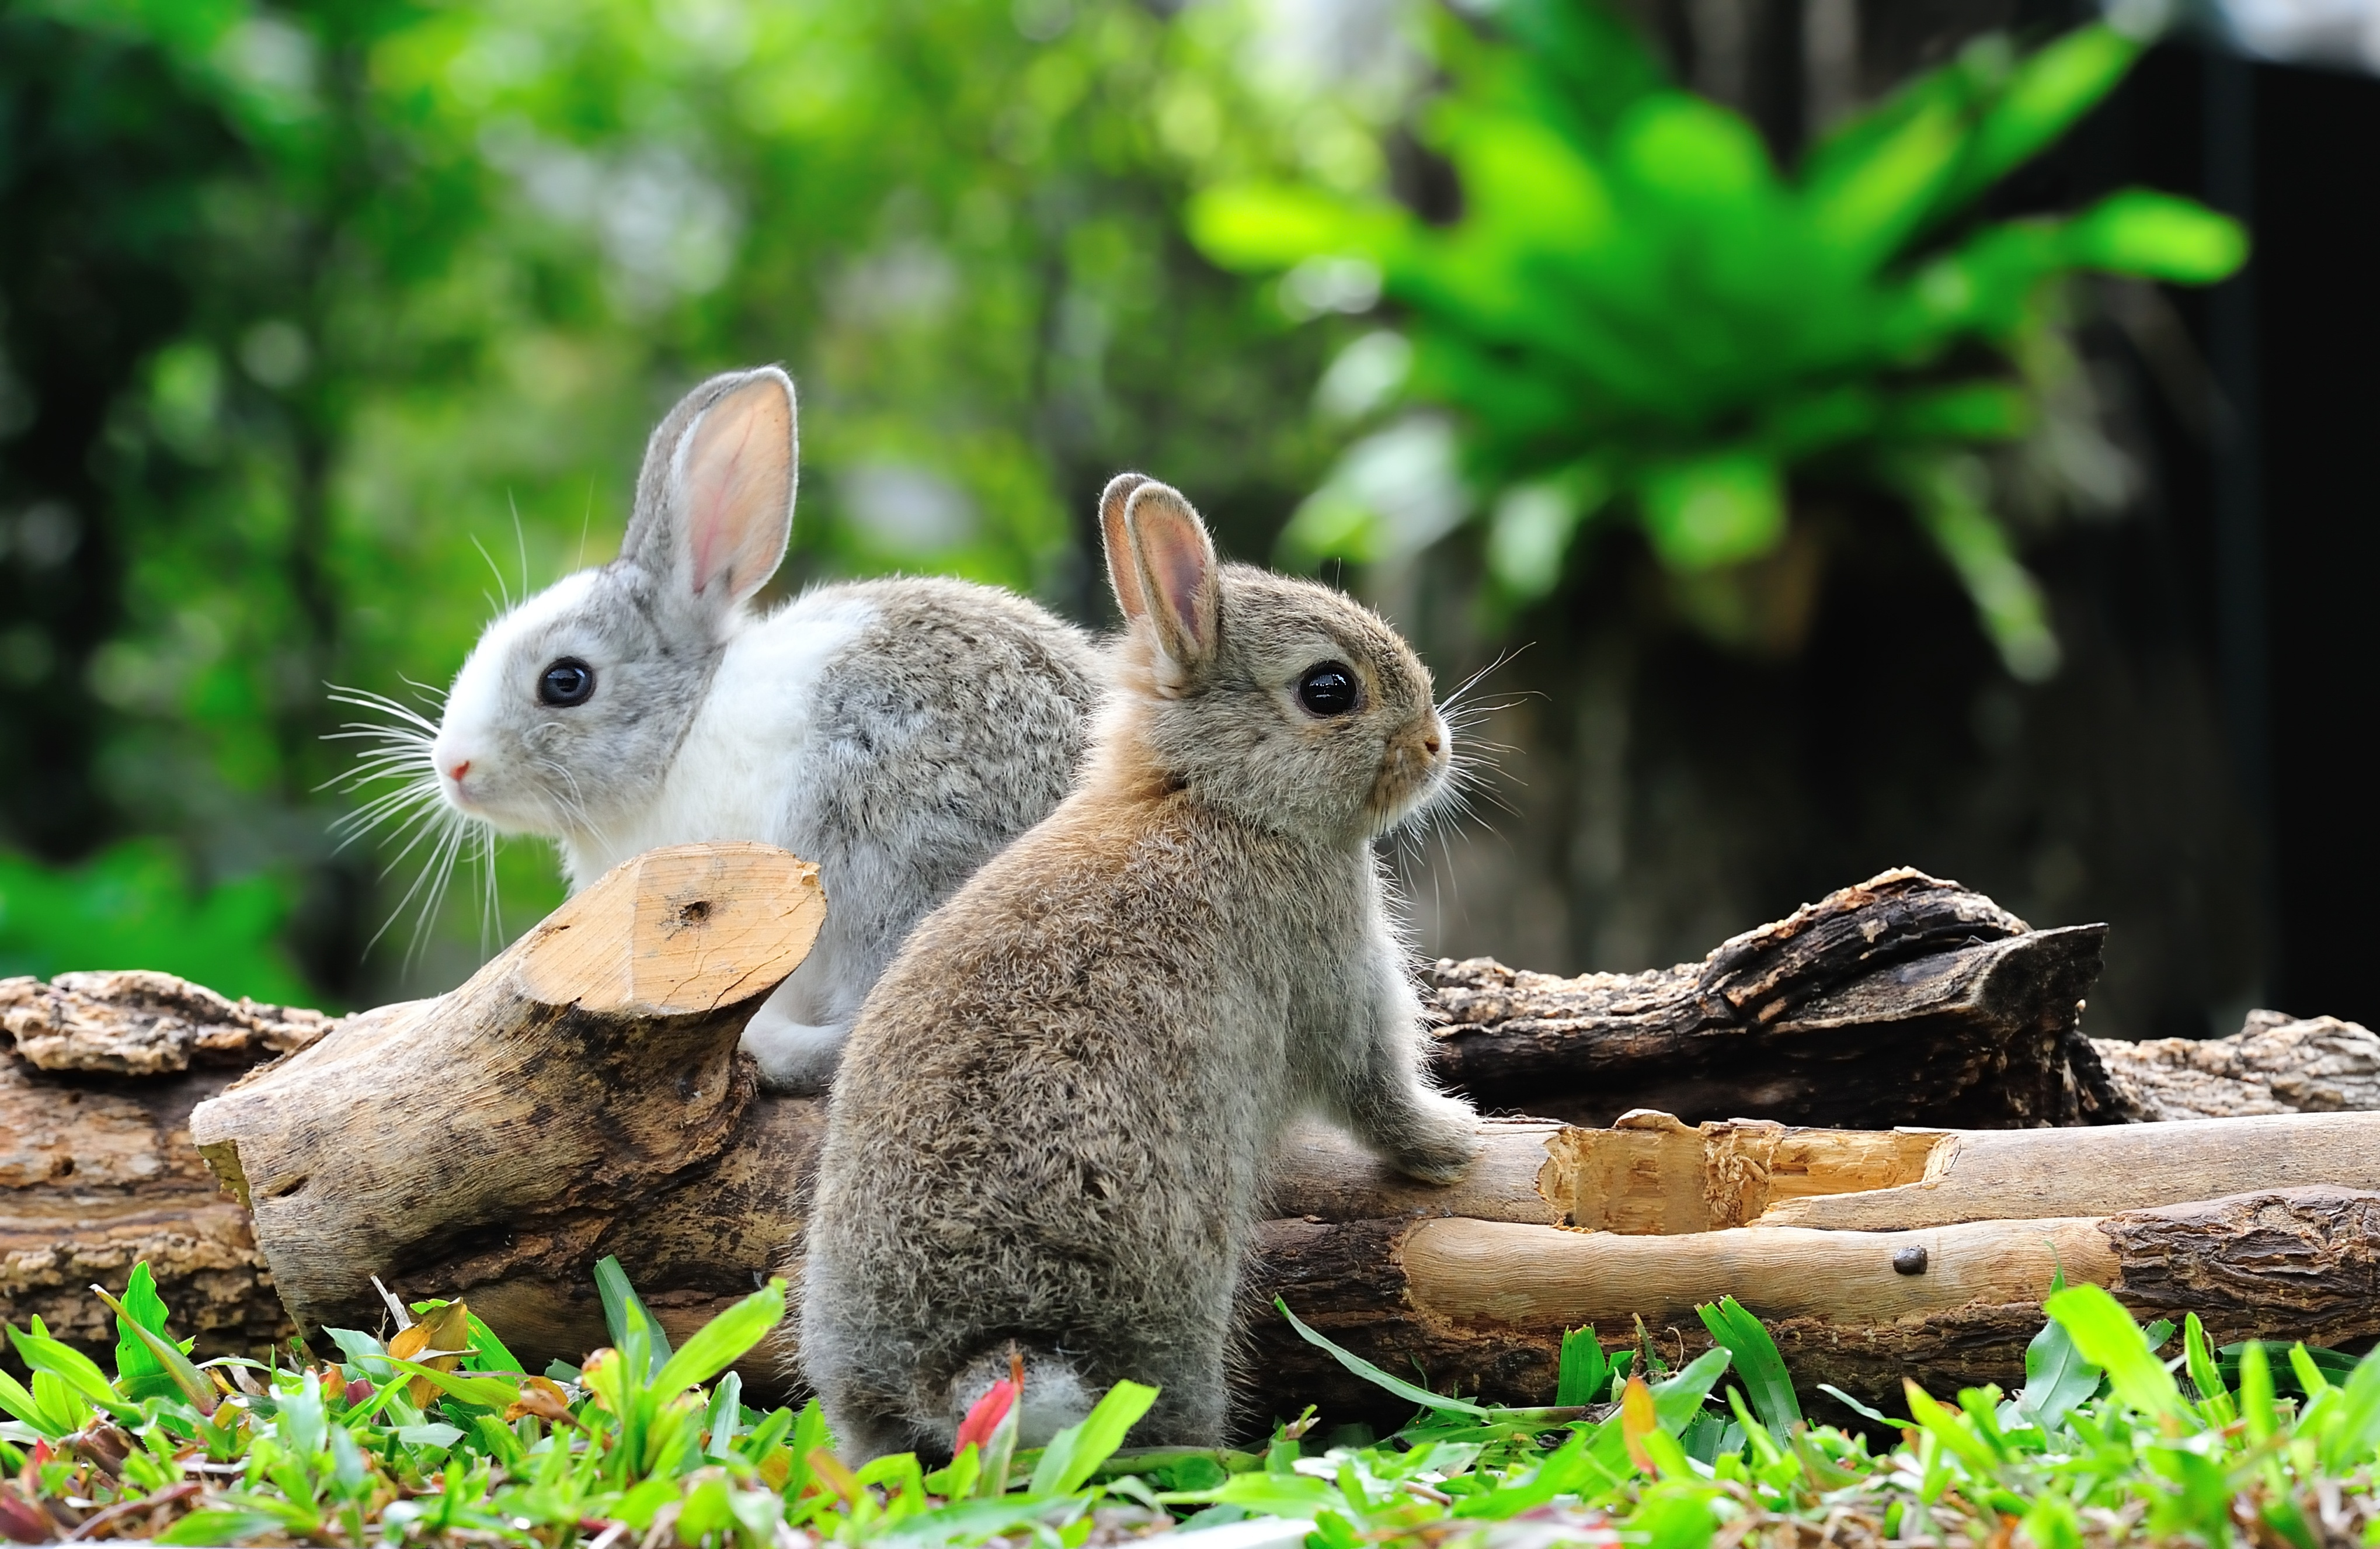 two bunny rabbits on a log in the garden